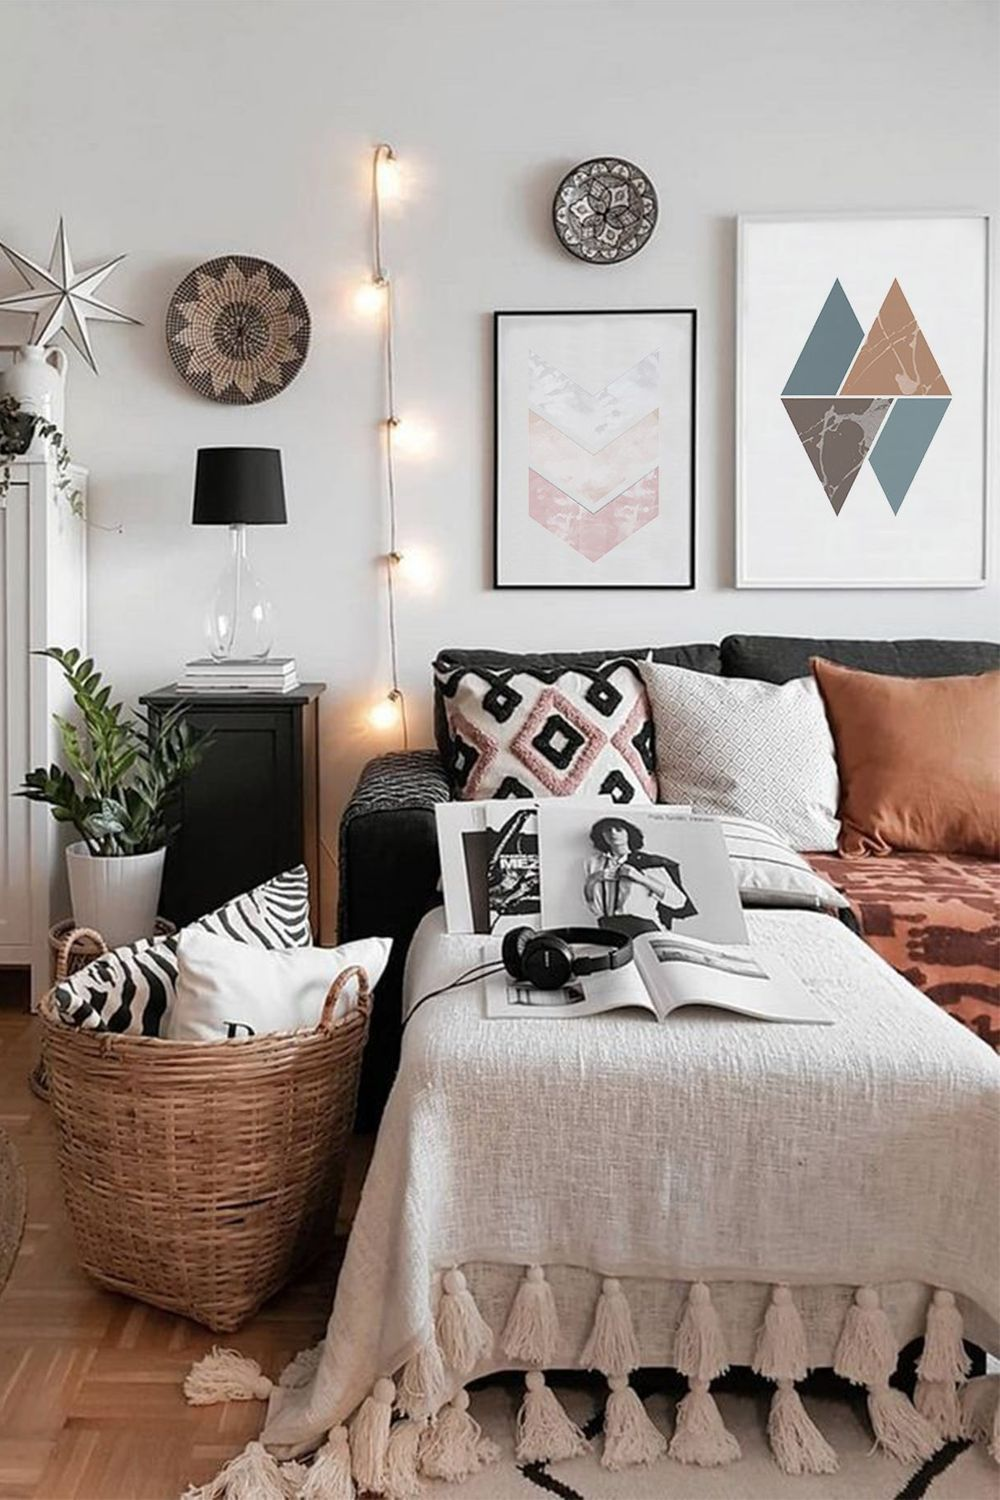 Home Bedroom Bedroom Decorating Design Boho Chic Living Room Furniture Interior Design Wall Bedding Propert In 2020 Home Decor Styles Home Decor Apartment Decor